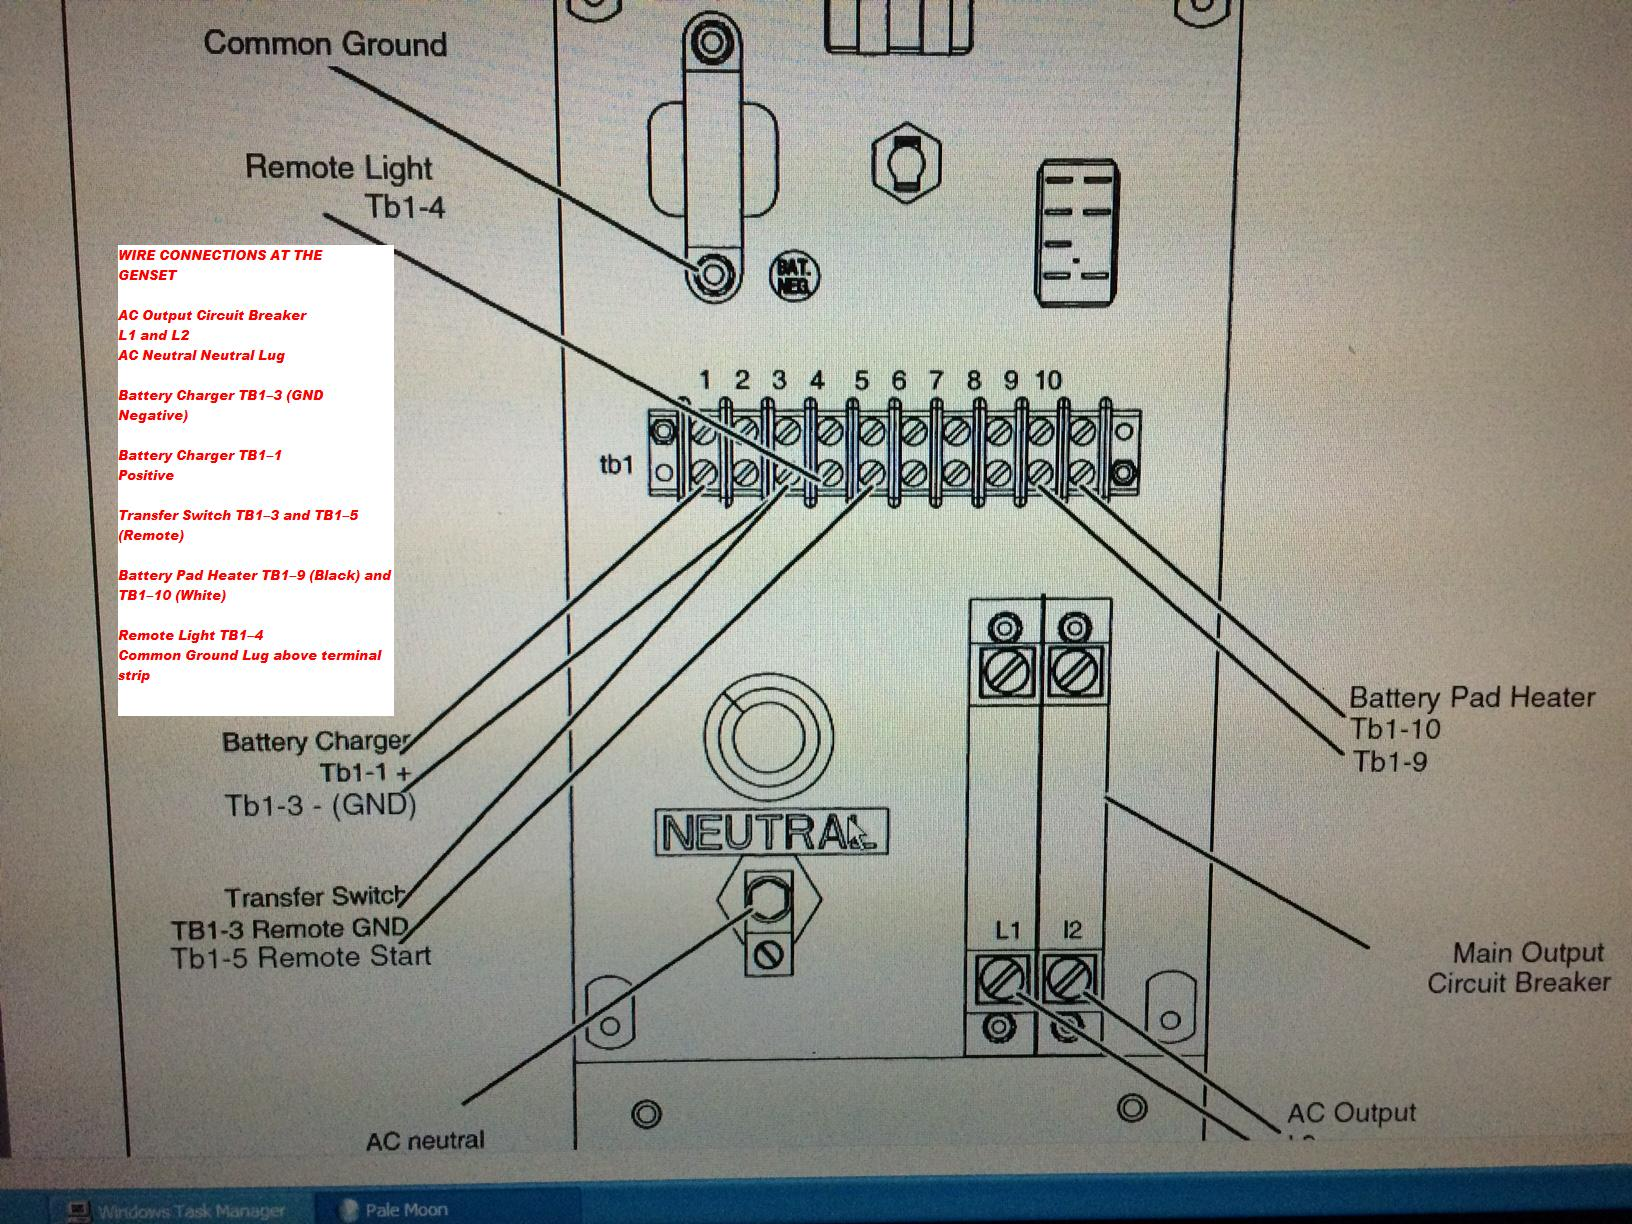 I Have An Onan Rs 12000 Grca Am Connecting It To Off Grid Propane Generator Wiring Diagram Graphic